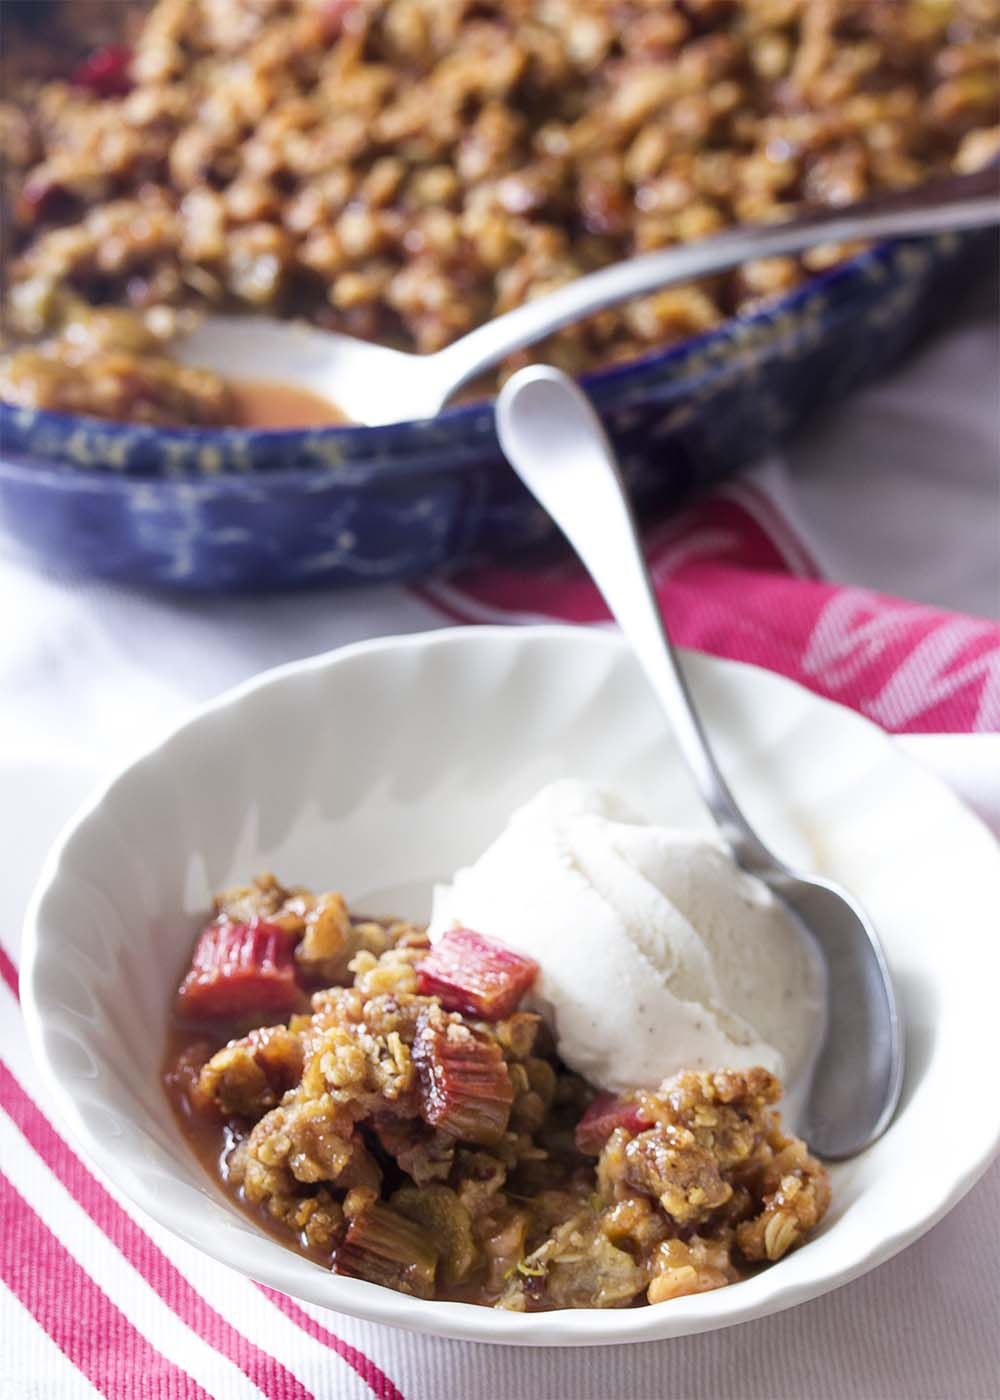 A bowl with a scoop of vanilla ice cream and spiced rhubarb crisp showing the pieces of rhubarb and crispy topping.